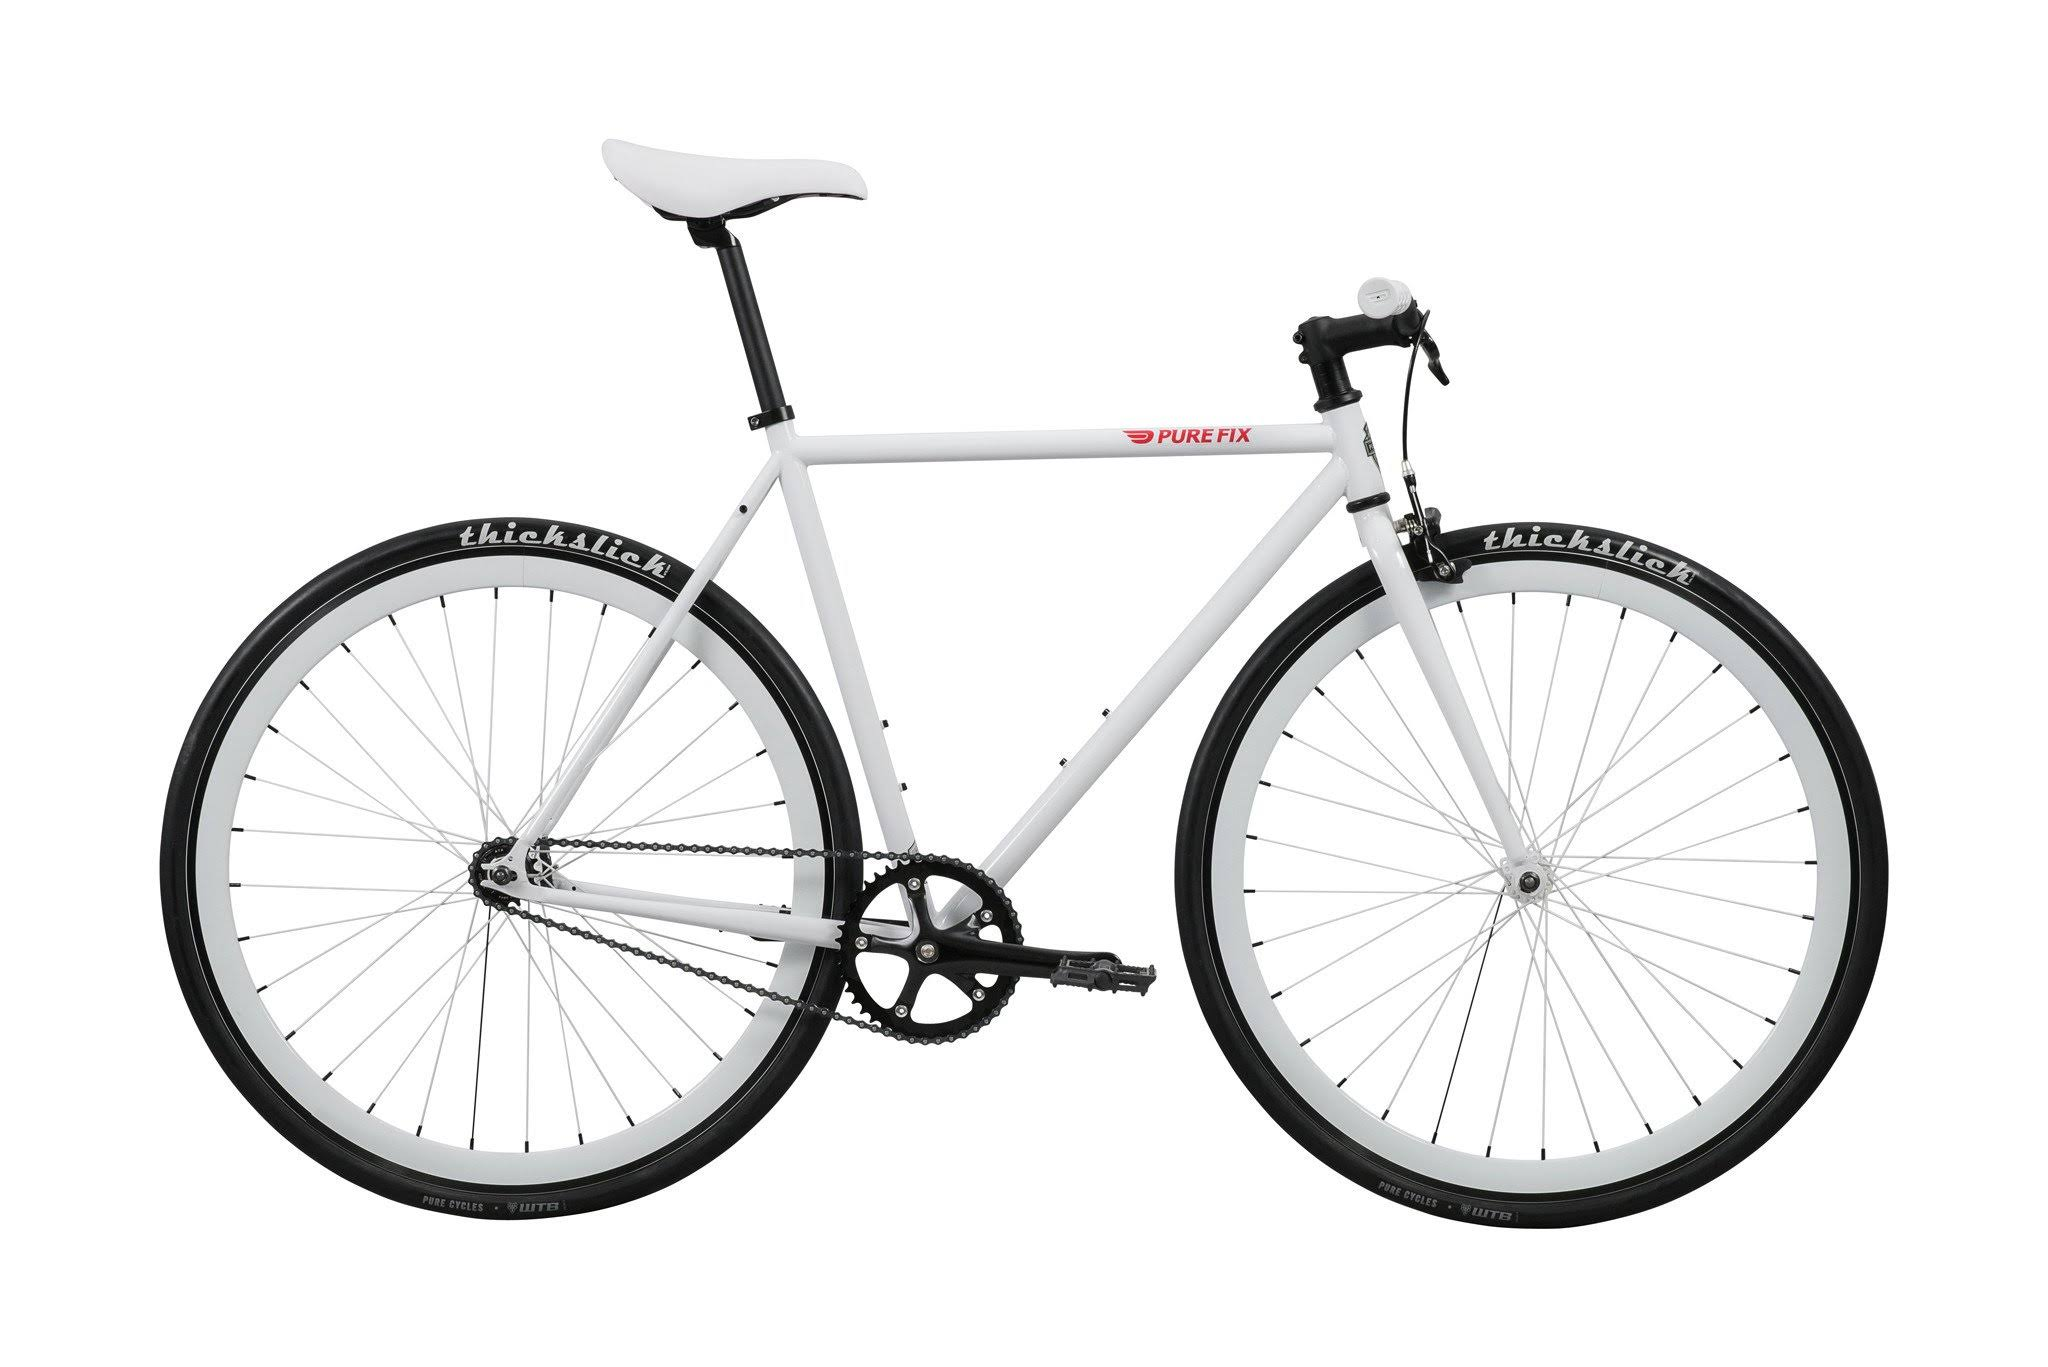 Pure Fix Original Fixed Gear Single Speed Fixie Bike - Romeo White, 54cm